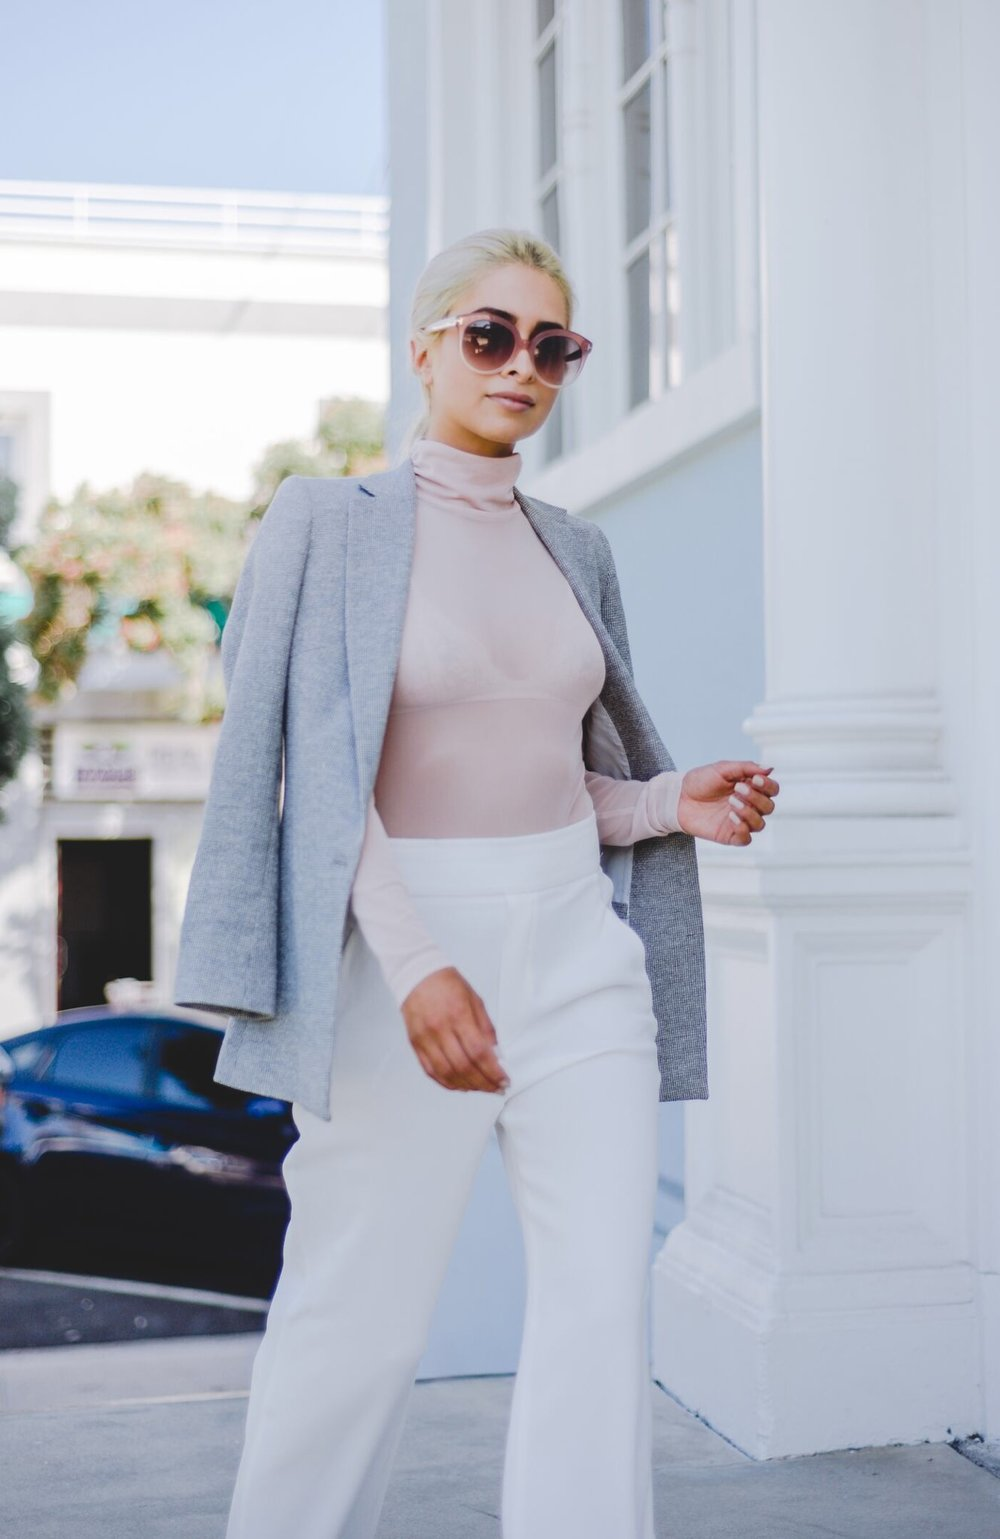 sheer blouse_blush tones_blush colored top_grey blazer_tom ford glasses_white high waisted trousers_savvy javvy_fashion blogger_la blogger_Oc blogger_NYC blogger_icy blonde hair_kim kardashian hair_olsen twin hair_Kim blonde hair_santa monica_street style_la streetstyle_best la fashion blogger